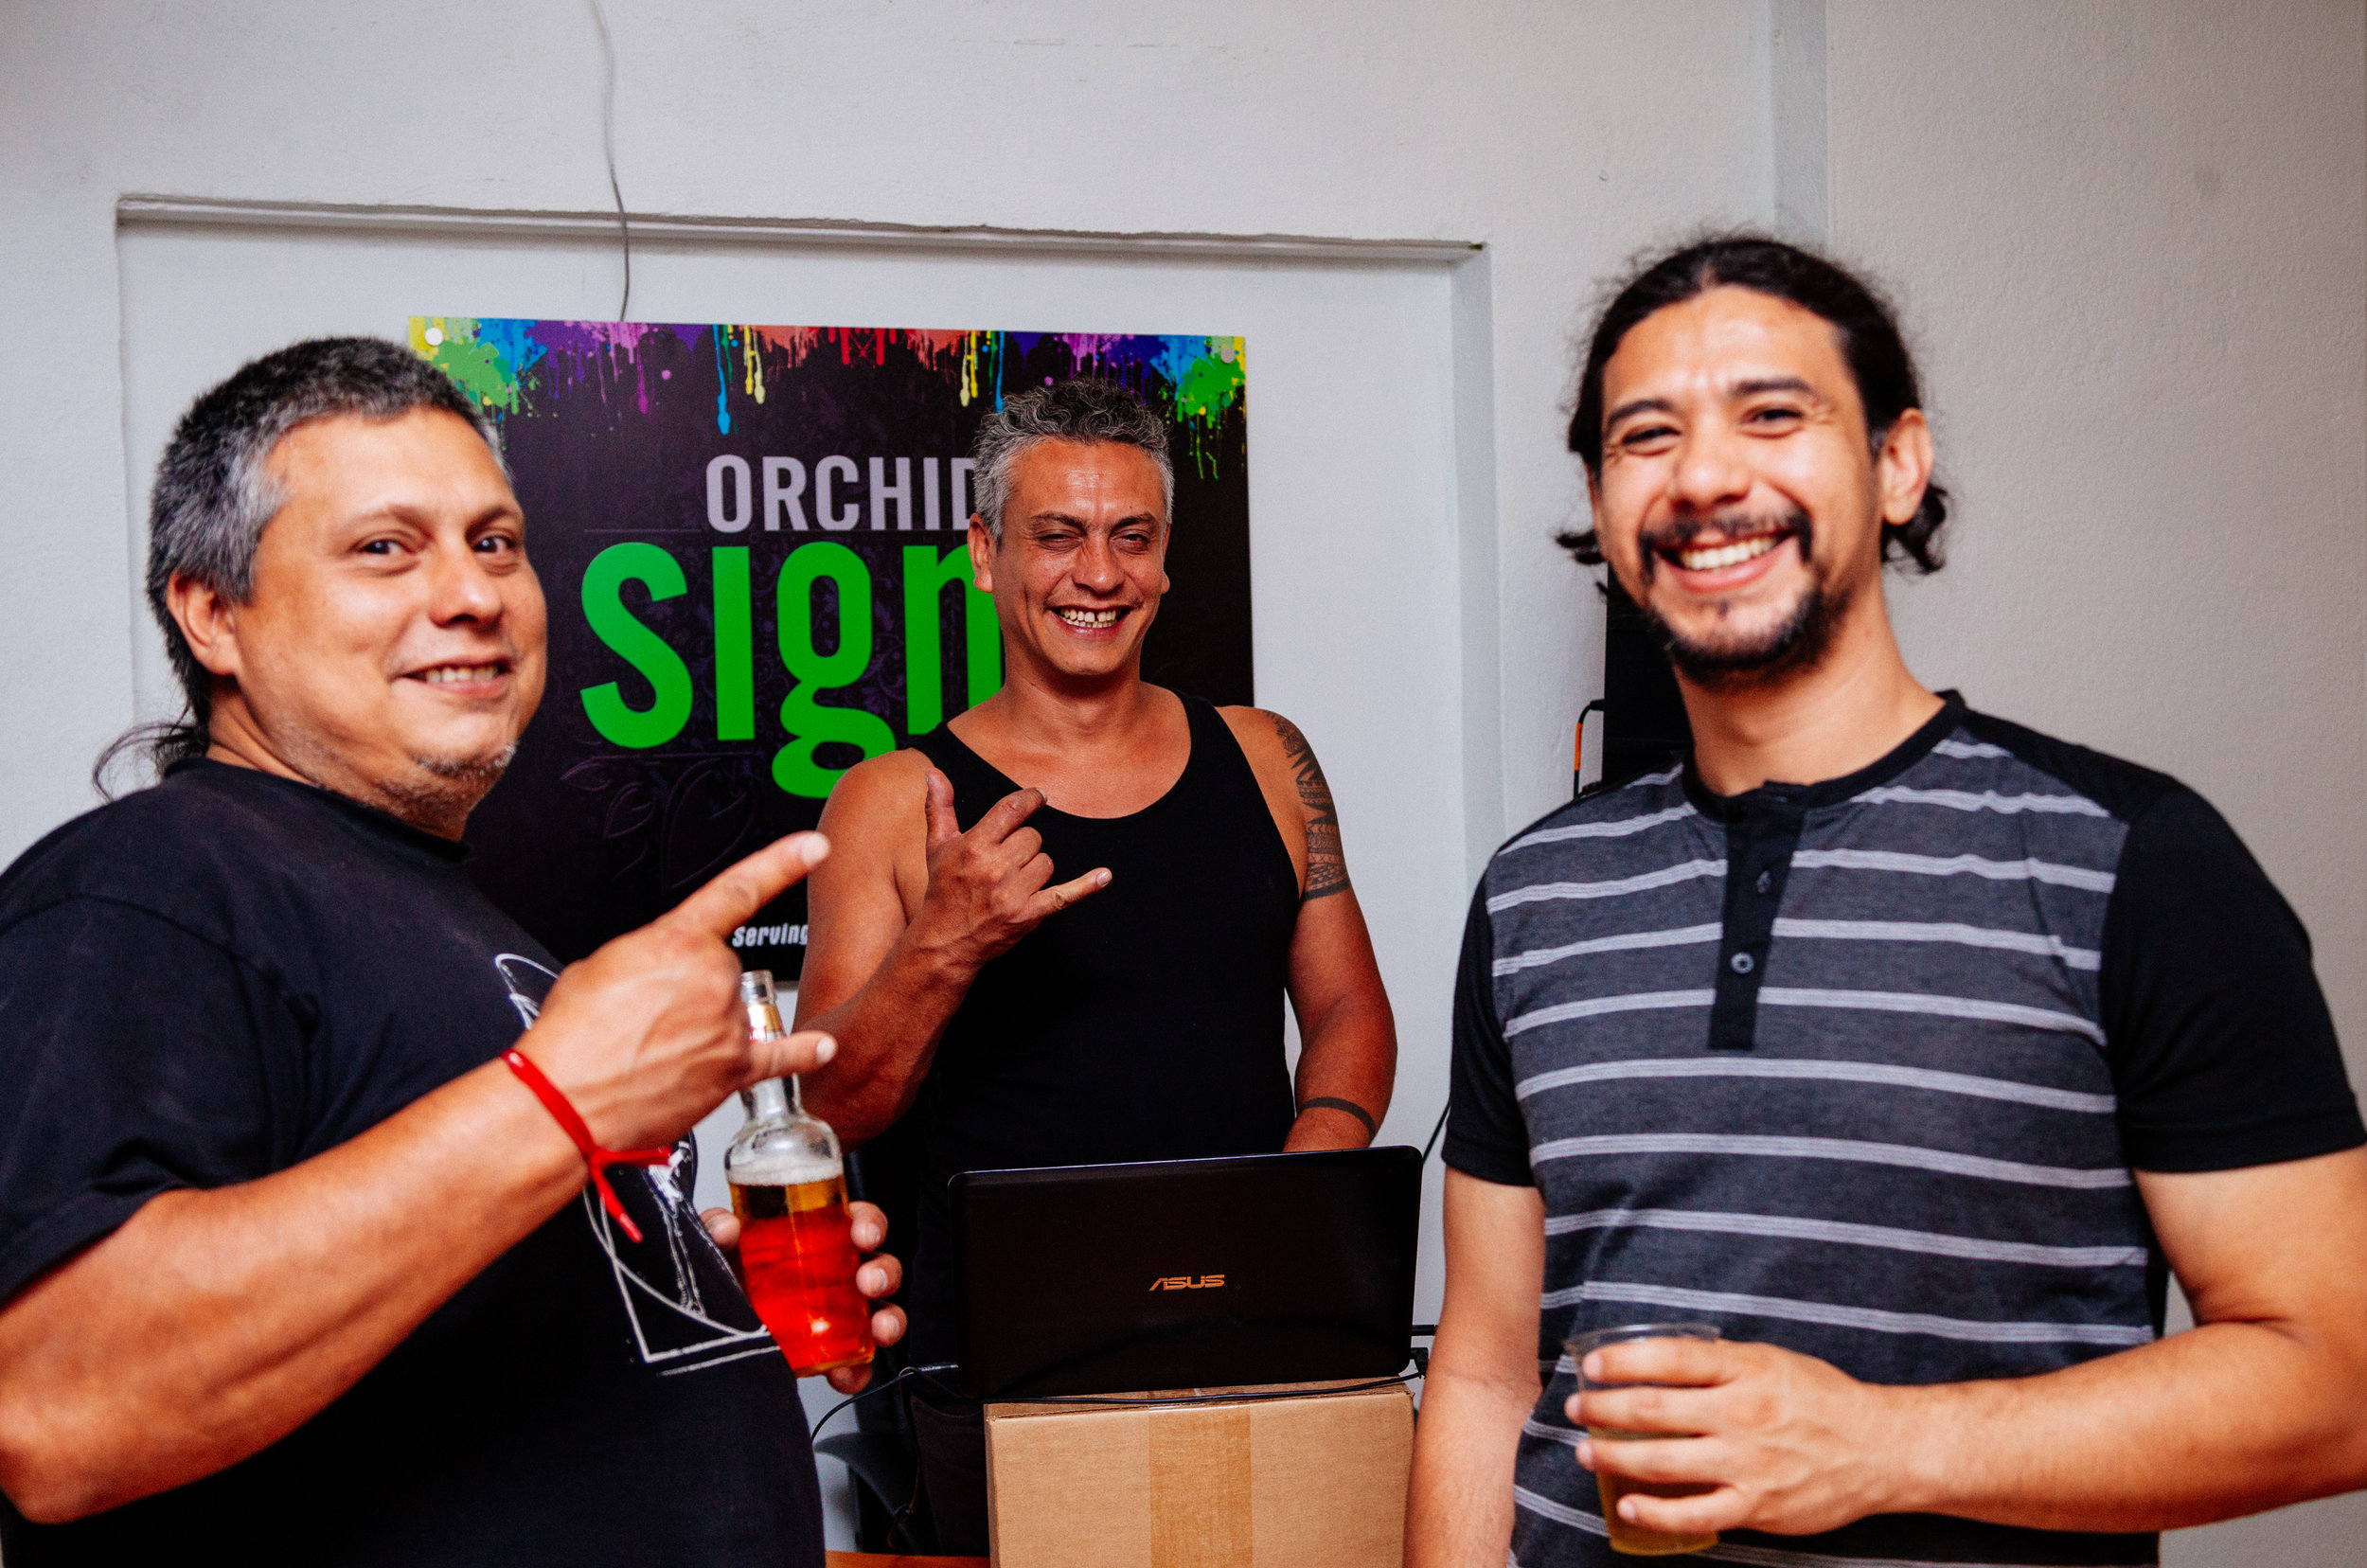 Art show of abstract portraits by Colombian born, Toronto based artist Carlos Delgado in downtown Toronto at Orchid Signs.